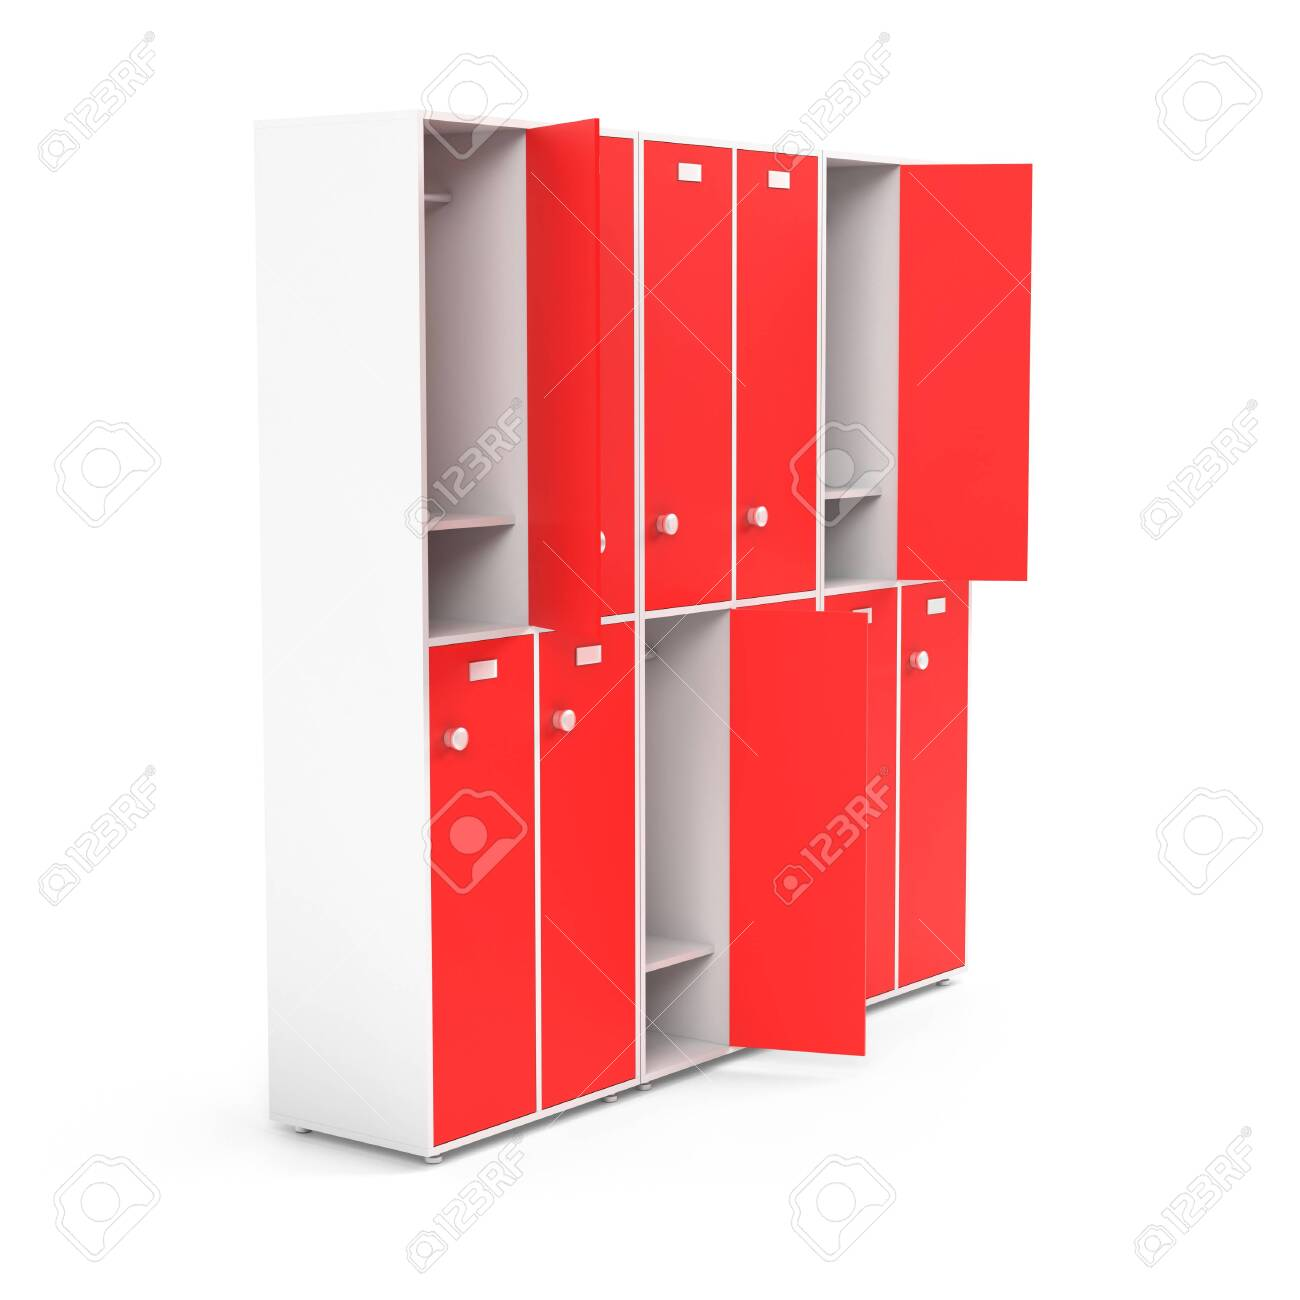 Red lockers. Two row section of lockers for schoool or gym. 3d rendering illustration isolated on white background - 150521387